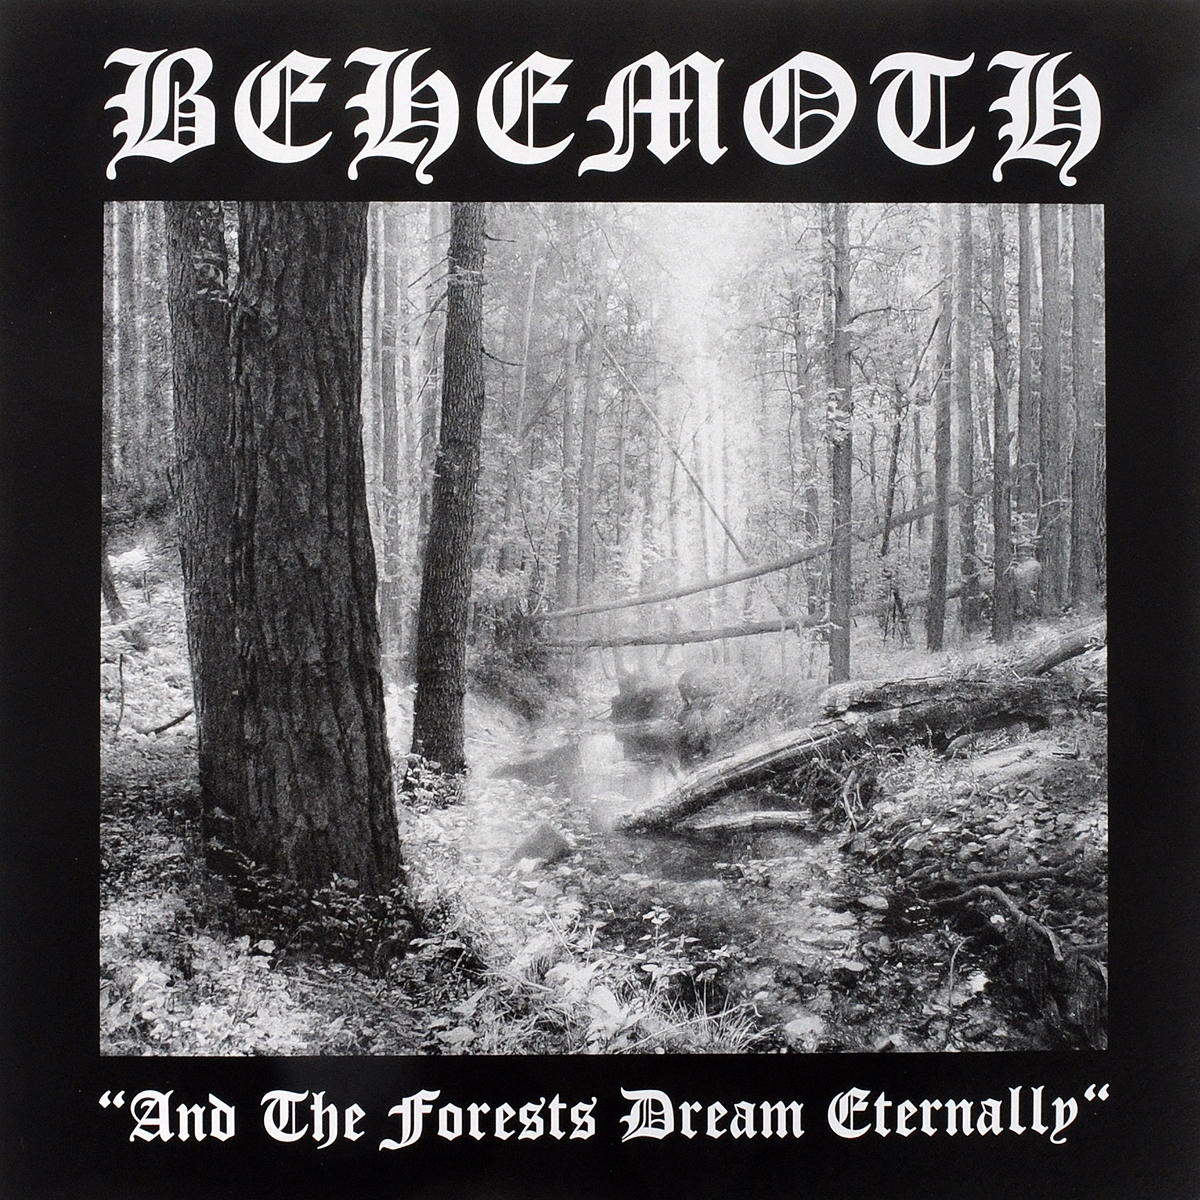 Behemoth Behemoth. And The Forests Dream Eternally (LP) behemoth behemoth pandemonic incantations